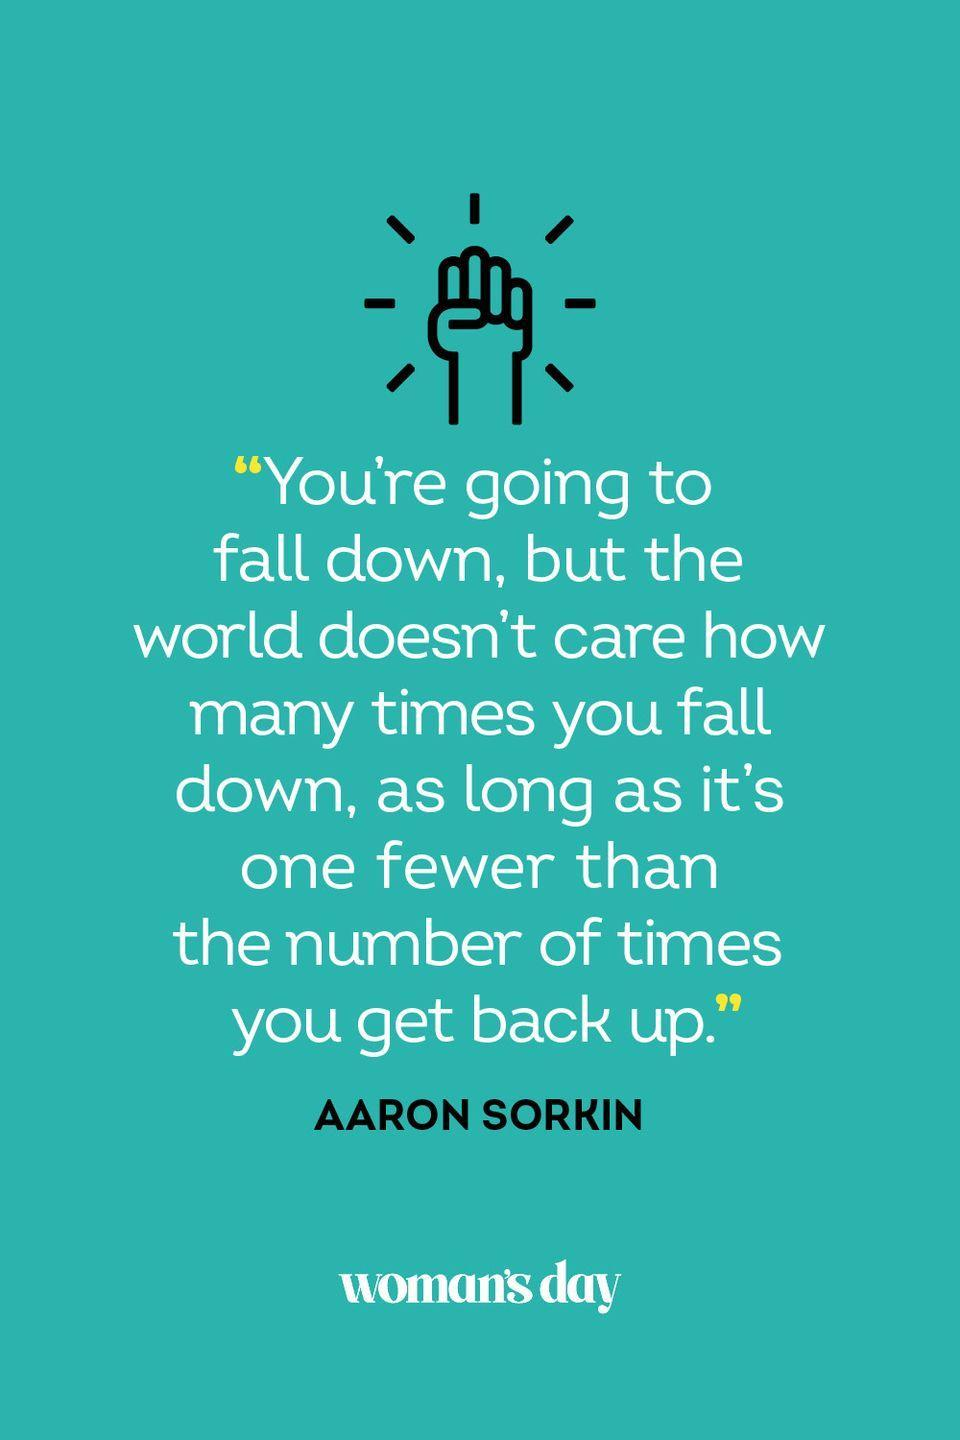 """<p>""""You're going to fall down, but the world doesn't care how many times you fall down, as long as it's one fewer than the number of times you get back up.""""</p>"""